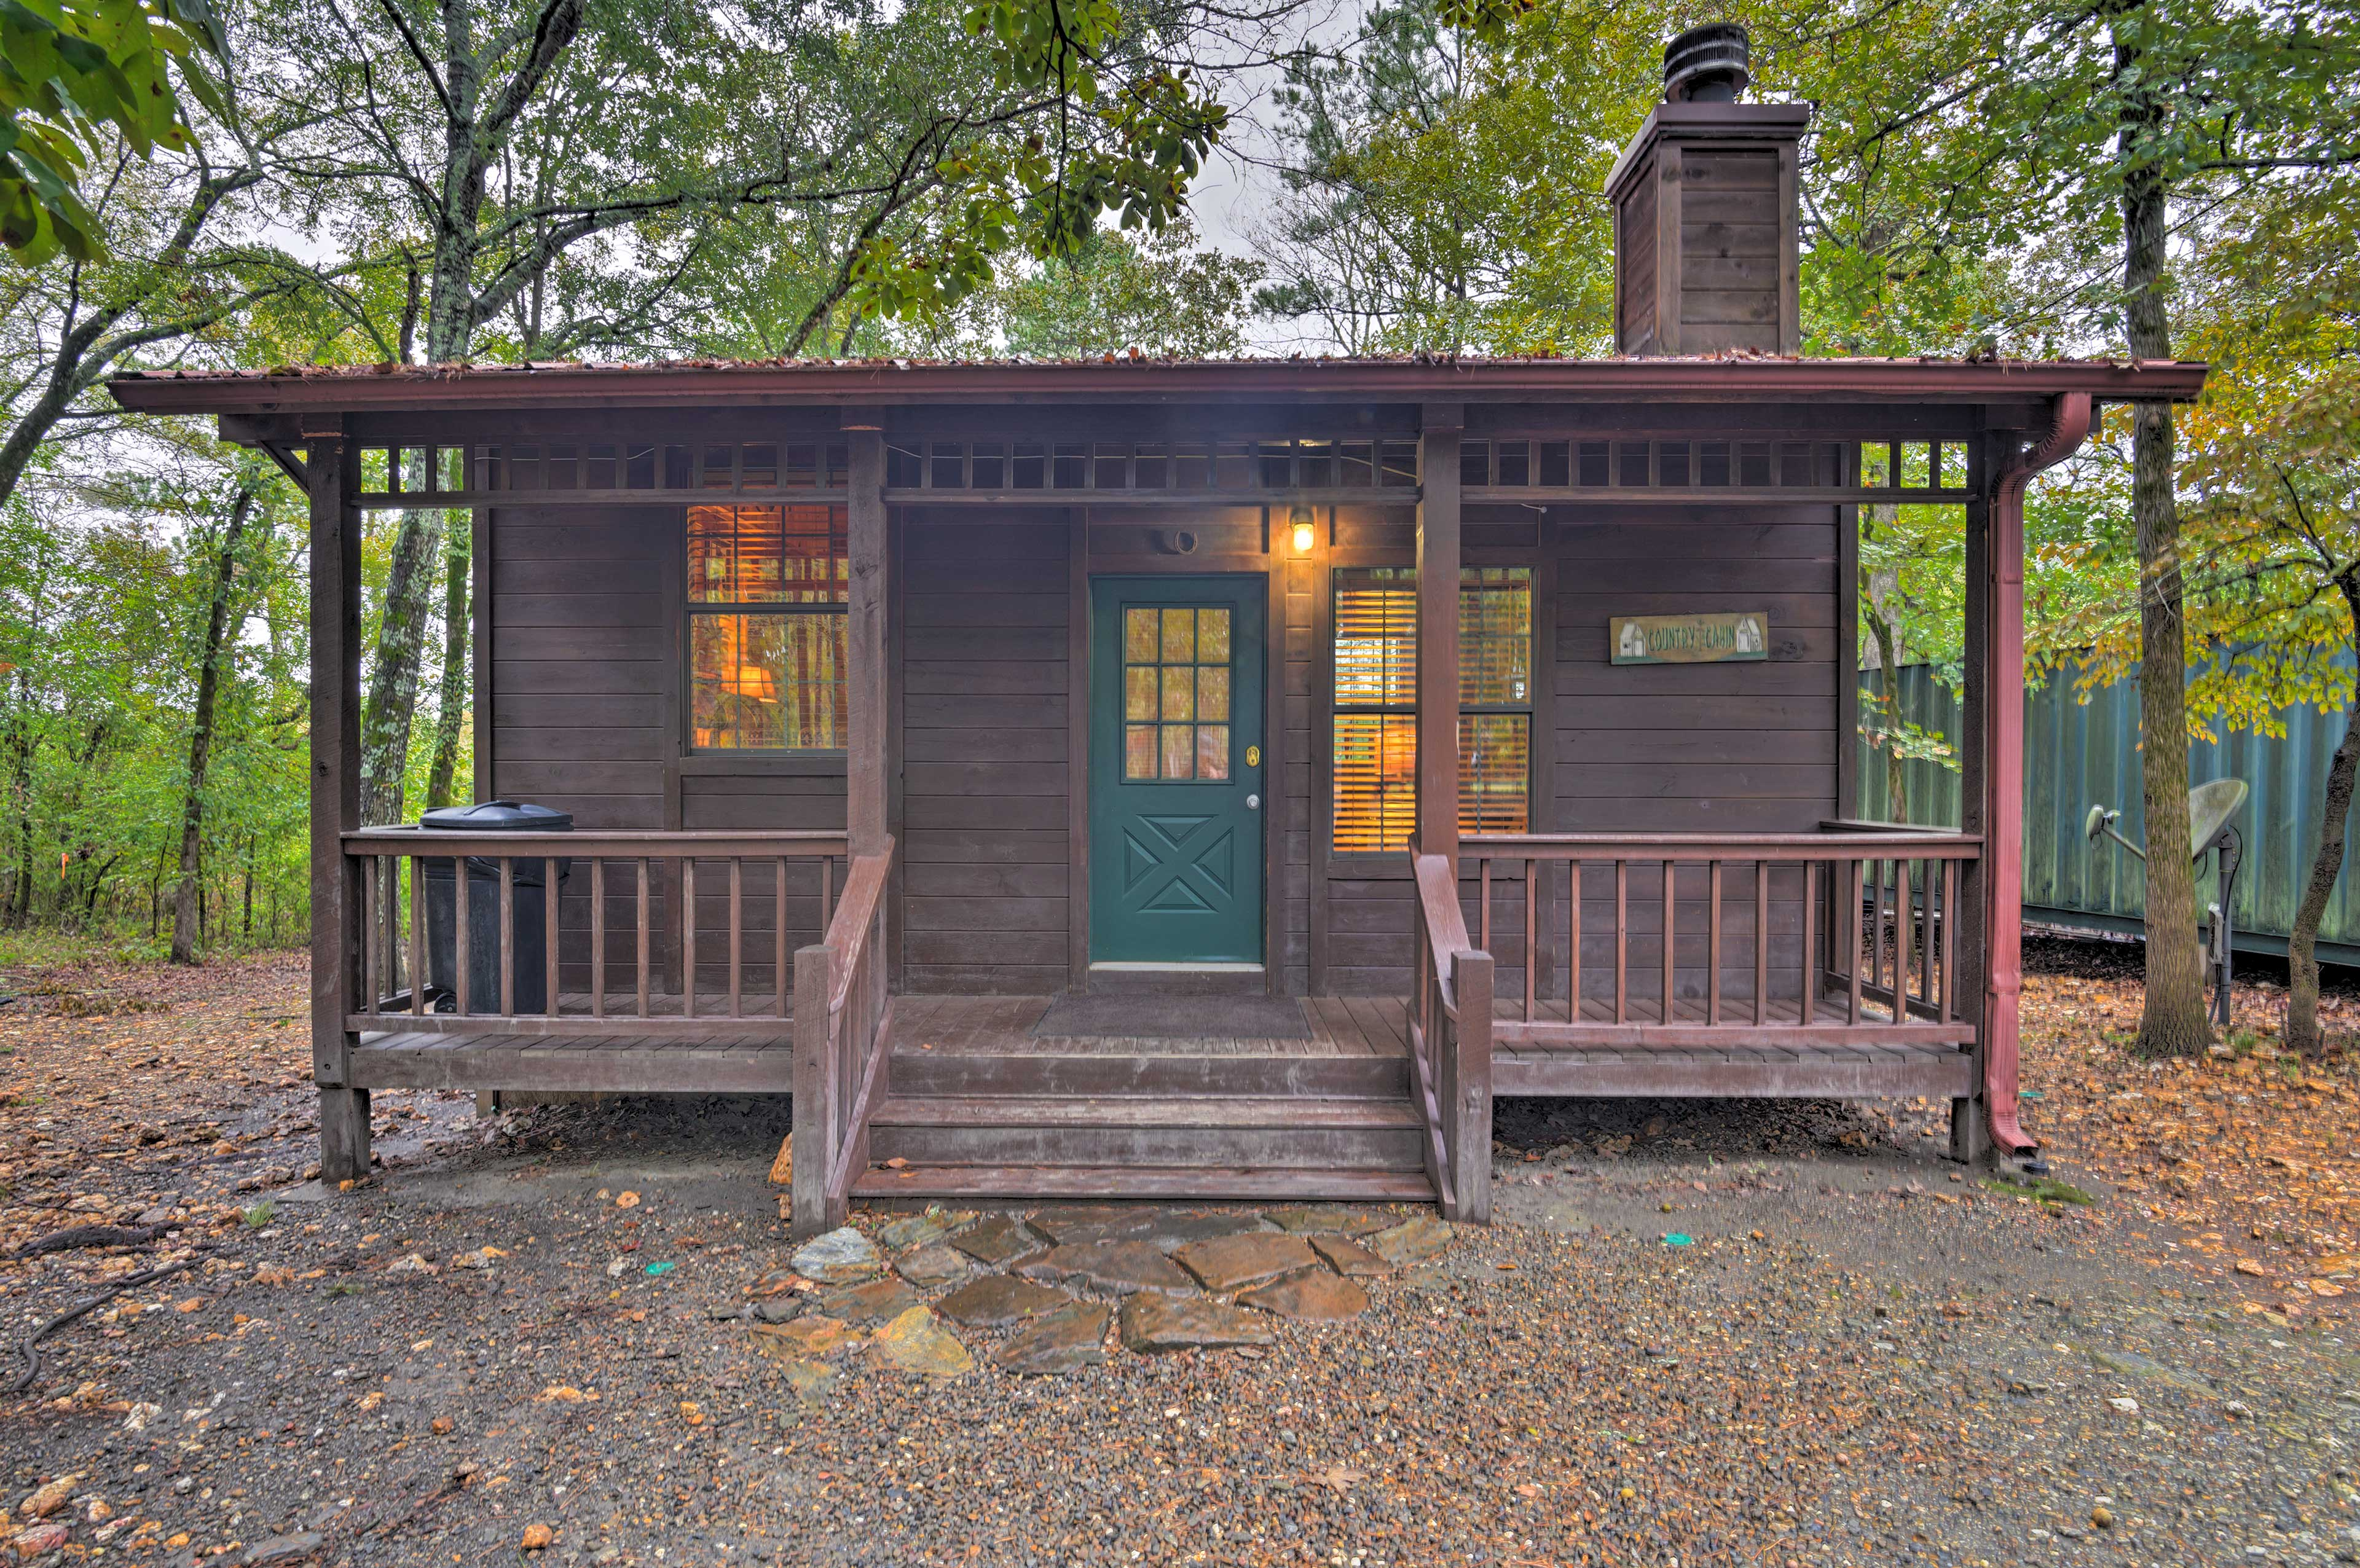 Scenic & semi-secluded, 'Sugar Shack' is the sweet escape you're searching for!